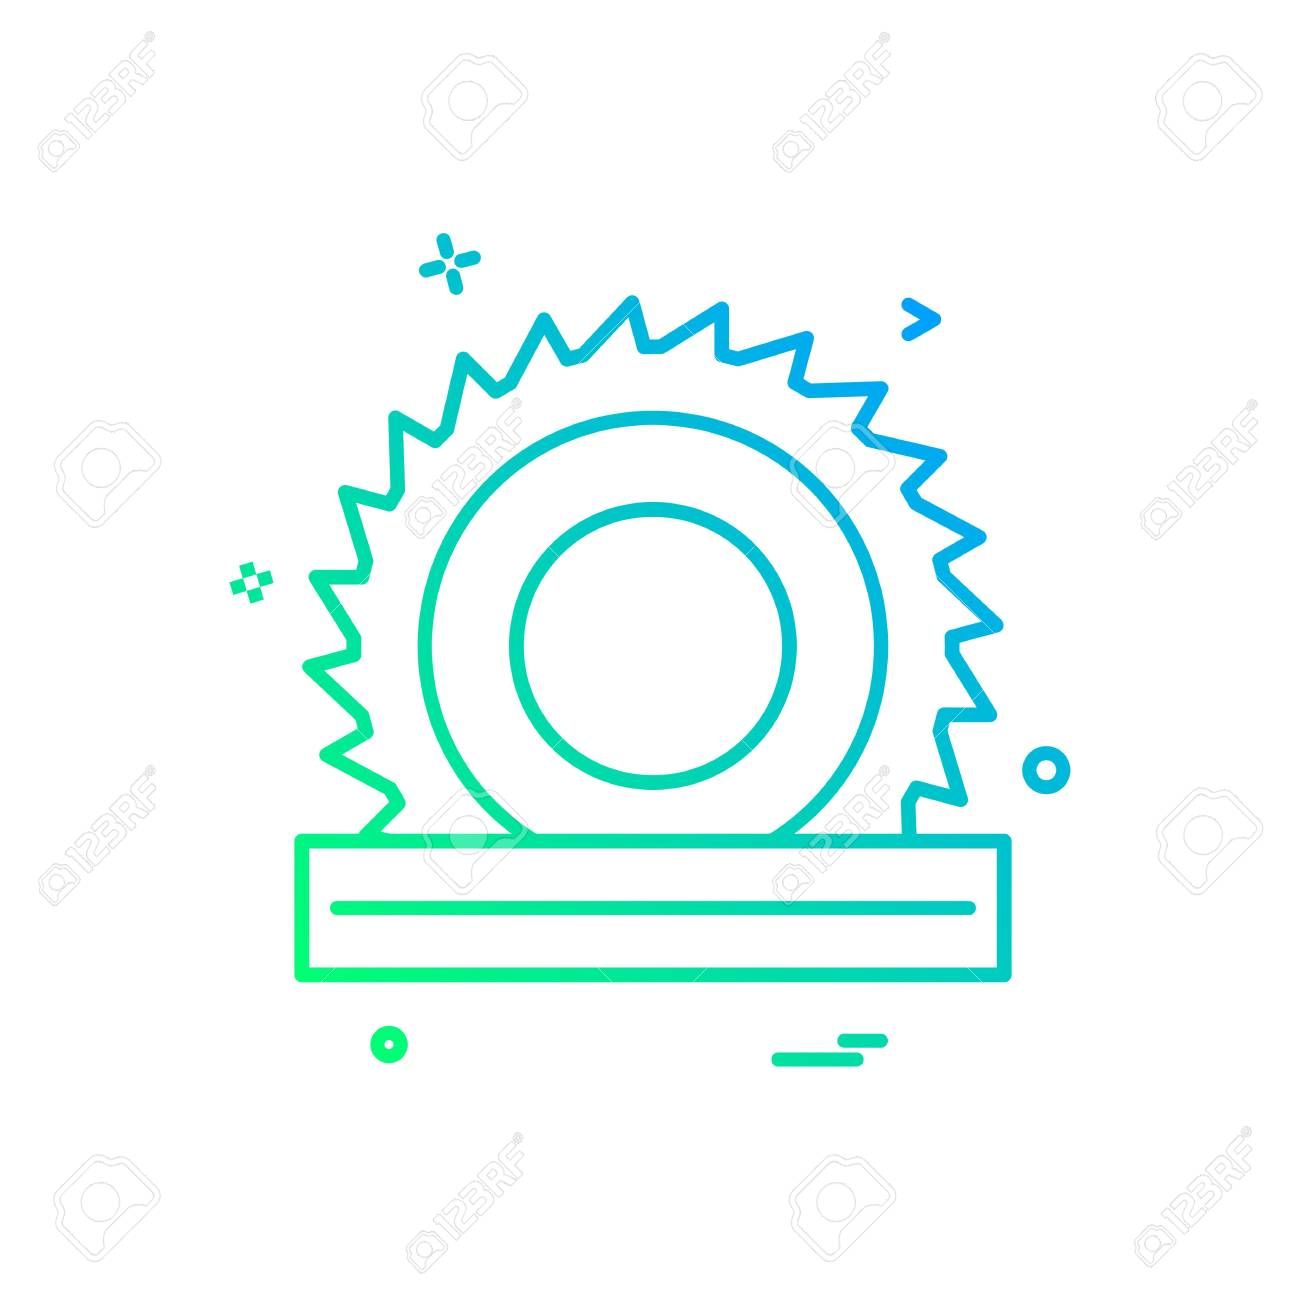 Wood Cutter Icon Vector Design